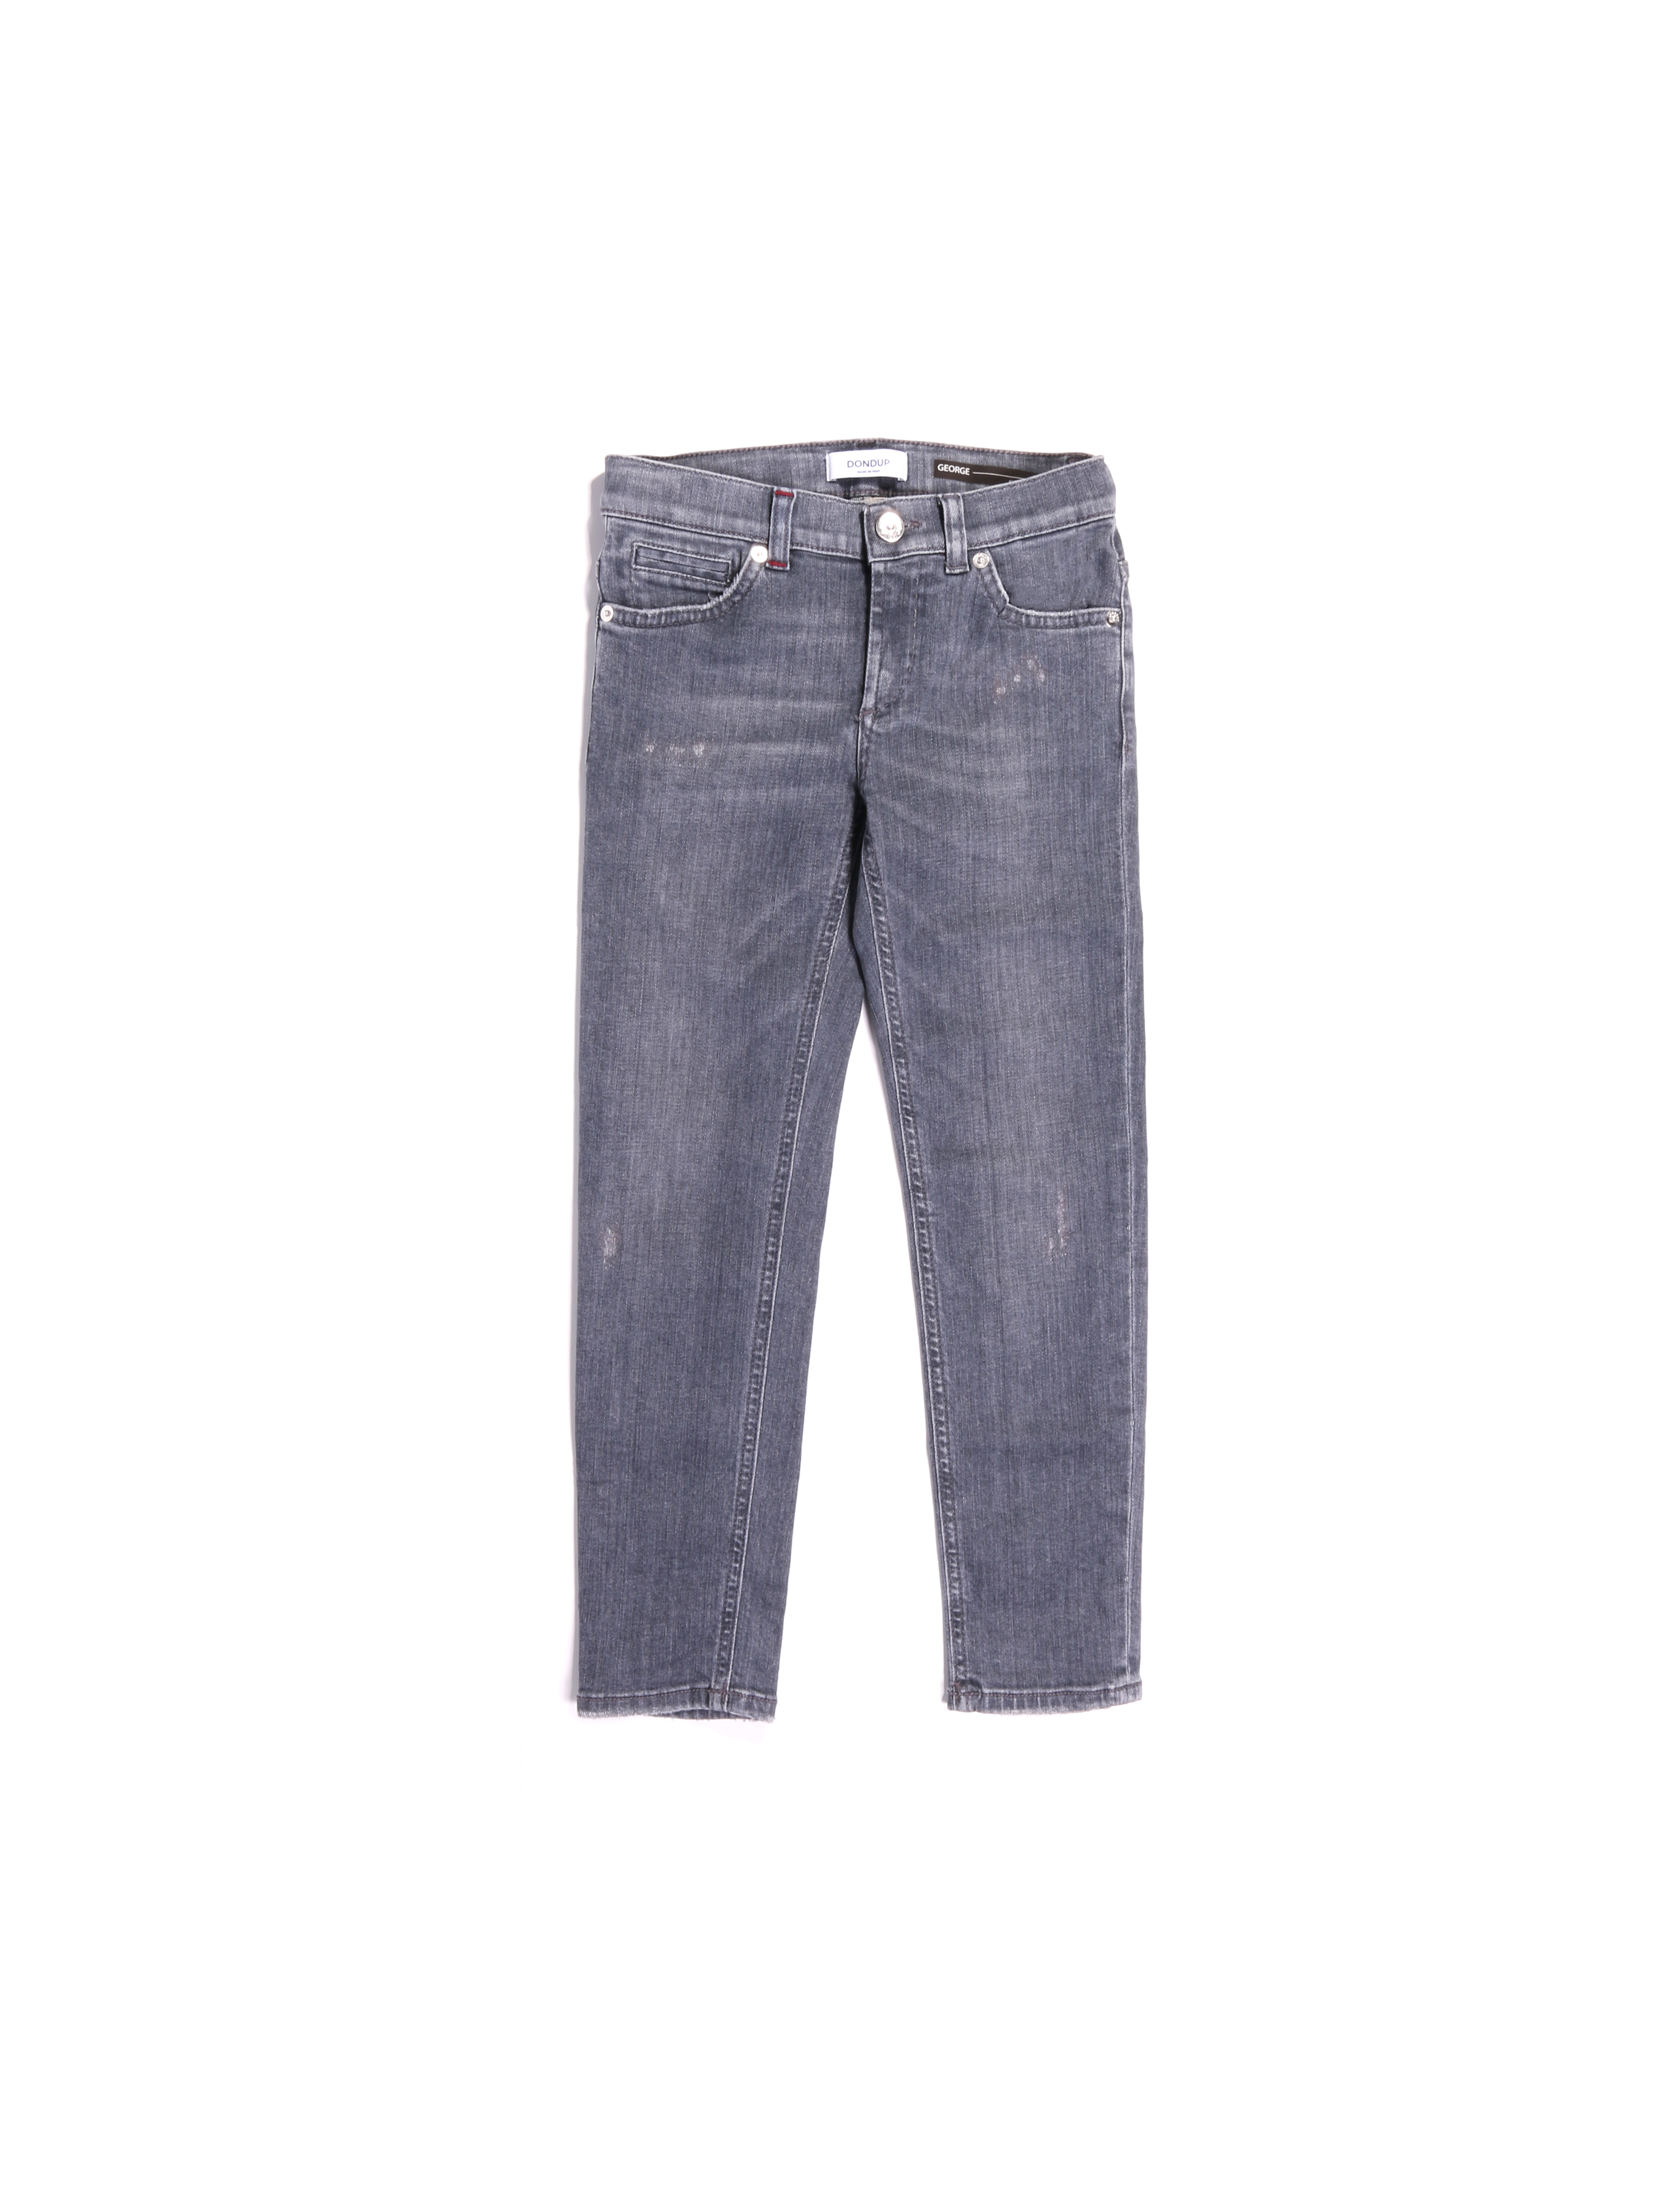 jeans denim grigio Dondup | Denim | BP217 DSE288 AW2 BDW20900